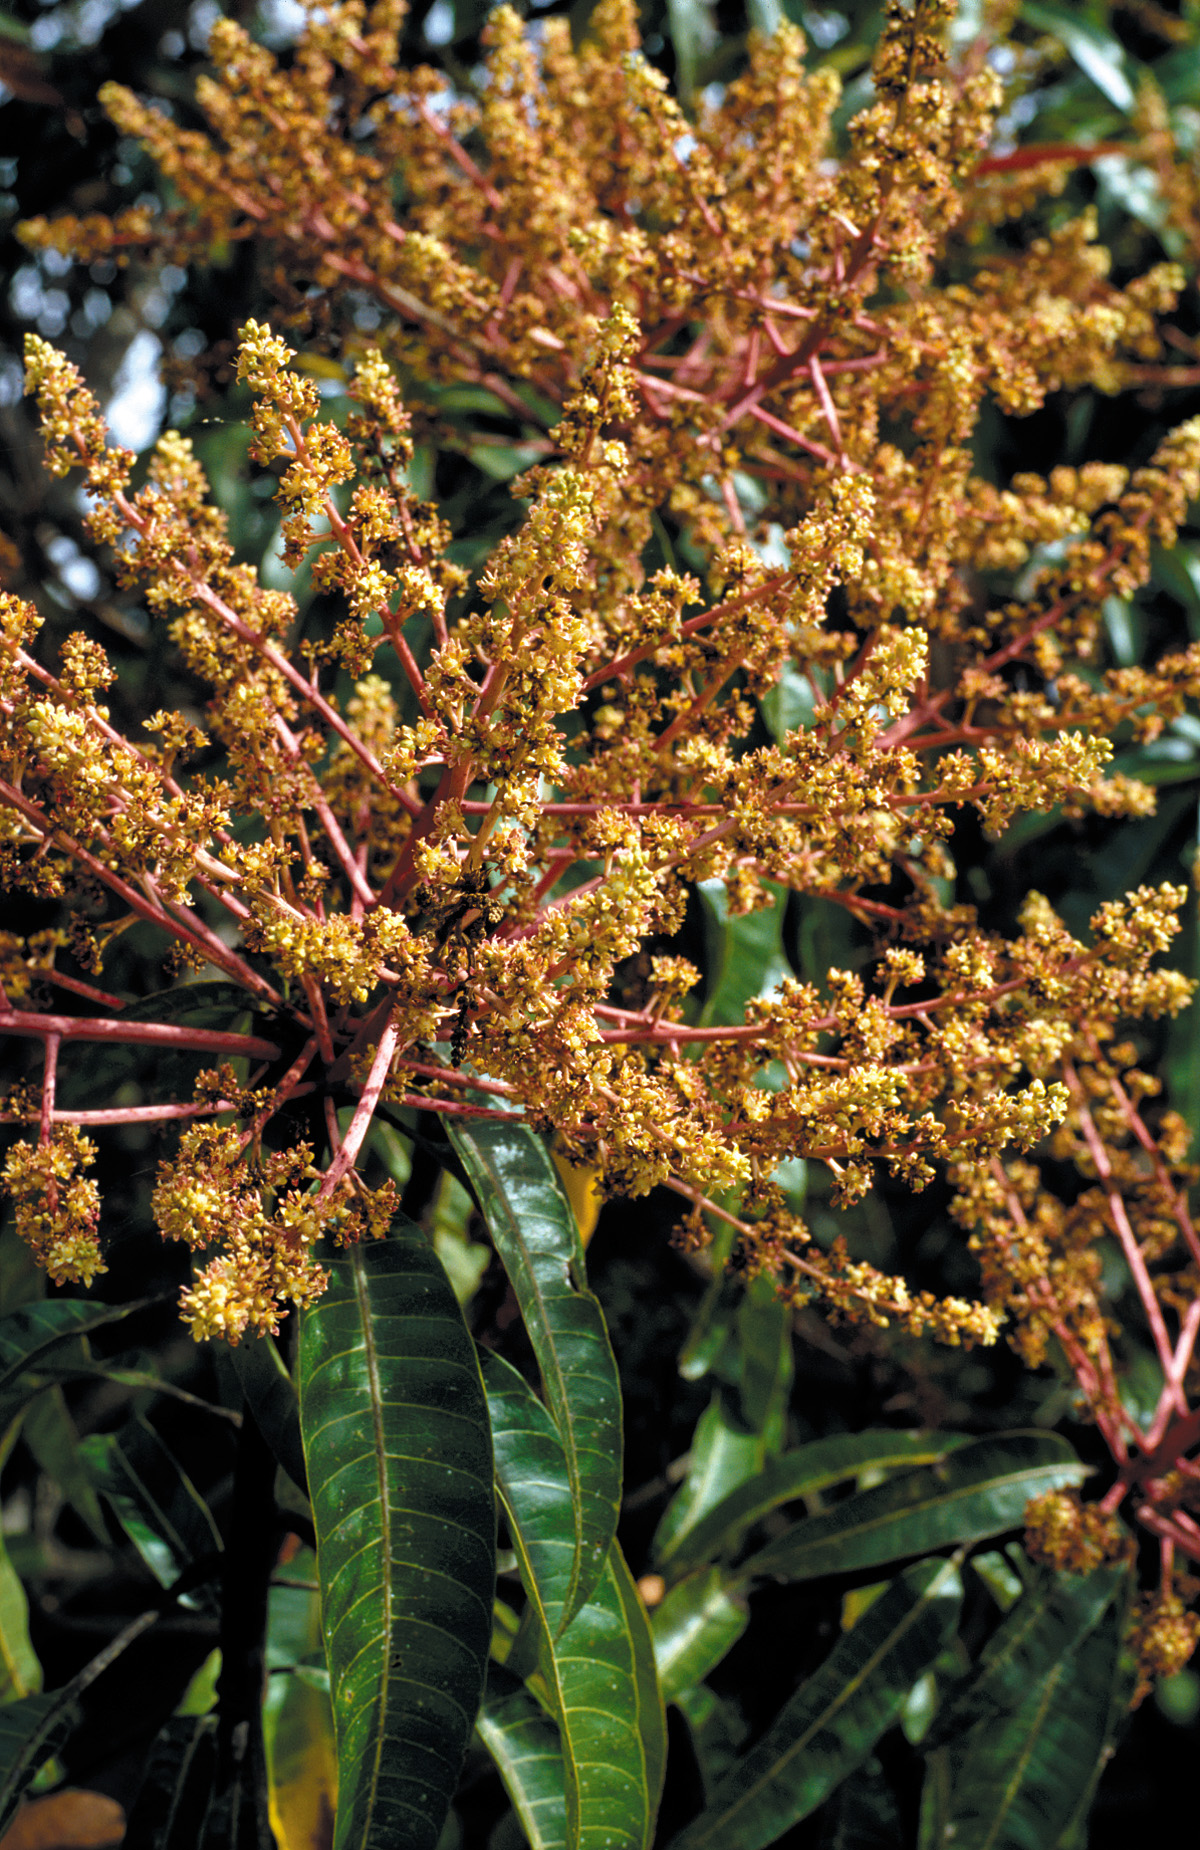 : Closeup view of mango tree flowers, Cardwell. QLD. Date26 July 2007 Sourcehttp://www.scienceimage.csiro.au/image/3706 AuthorWillem van Aken, CSIRO